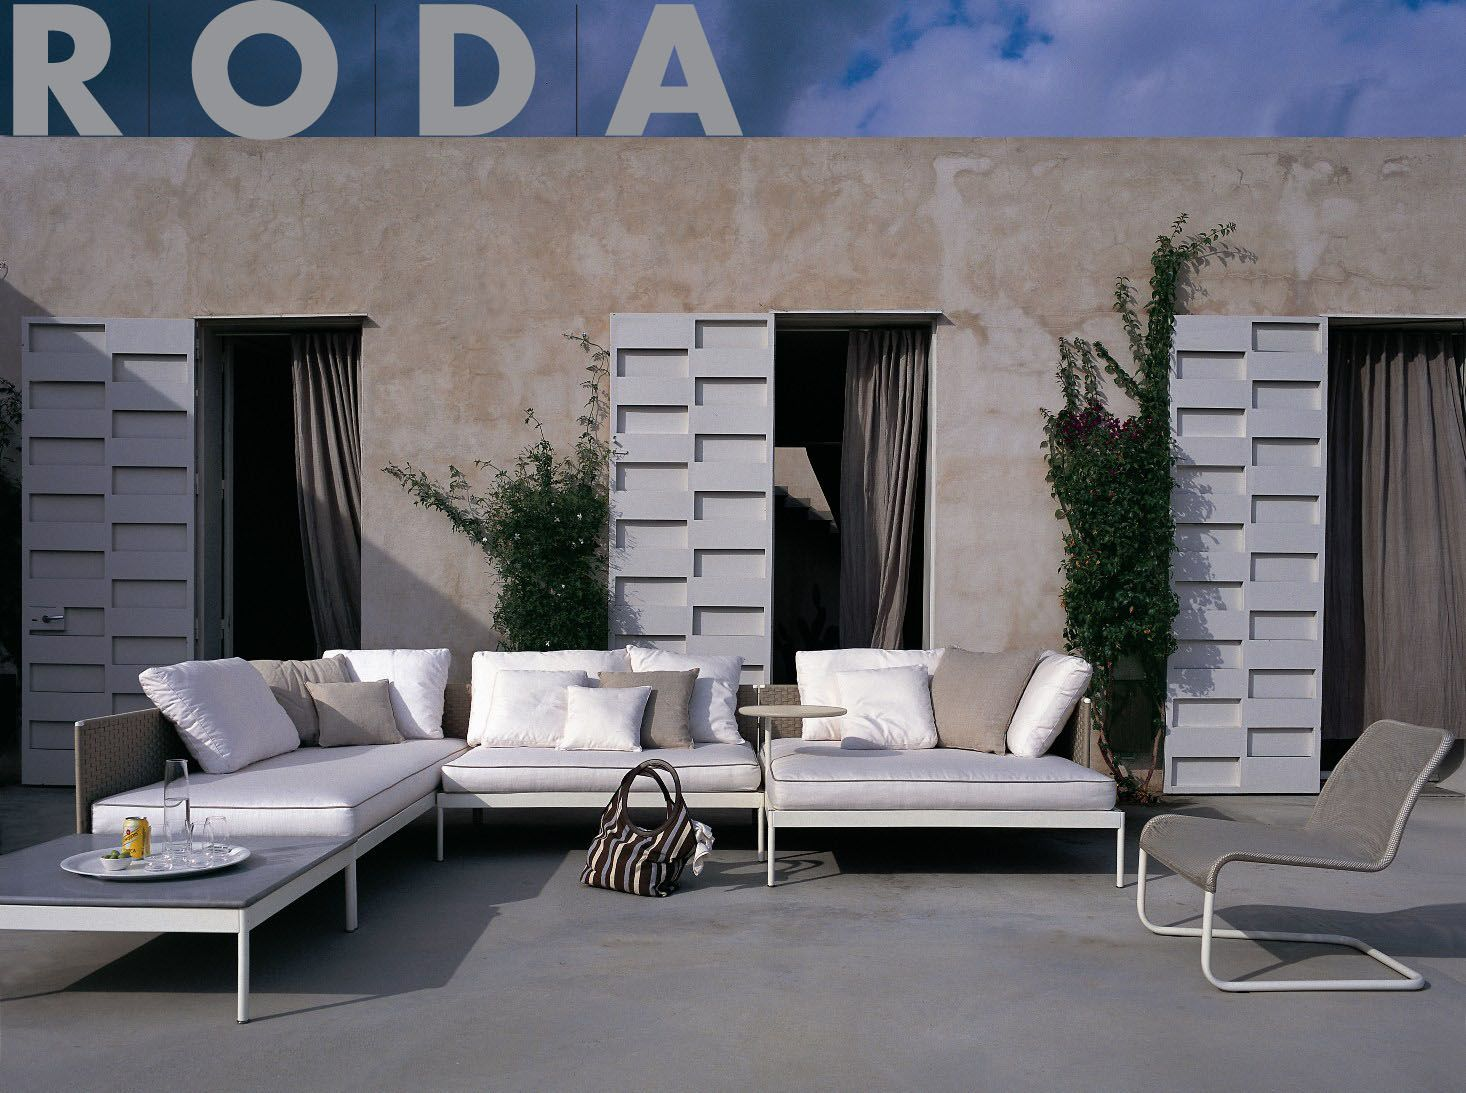 roda outdoor furniture - Google Search | Details - Doors & Entrances |  Pinterest | Doors - Roda Outdoor Furniture - Google Search Details - Doors & Entrances